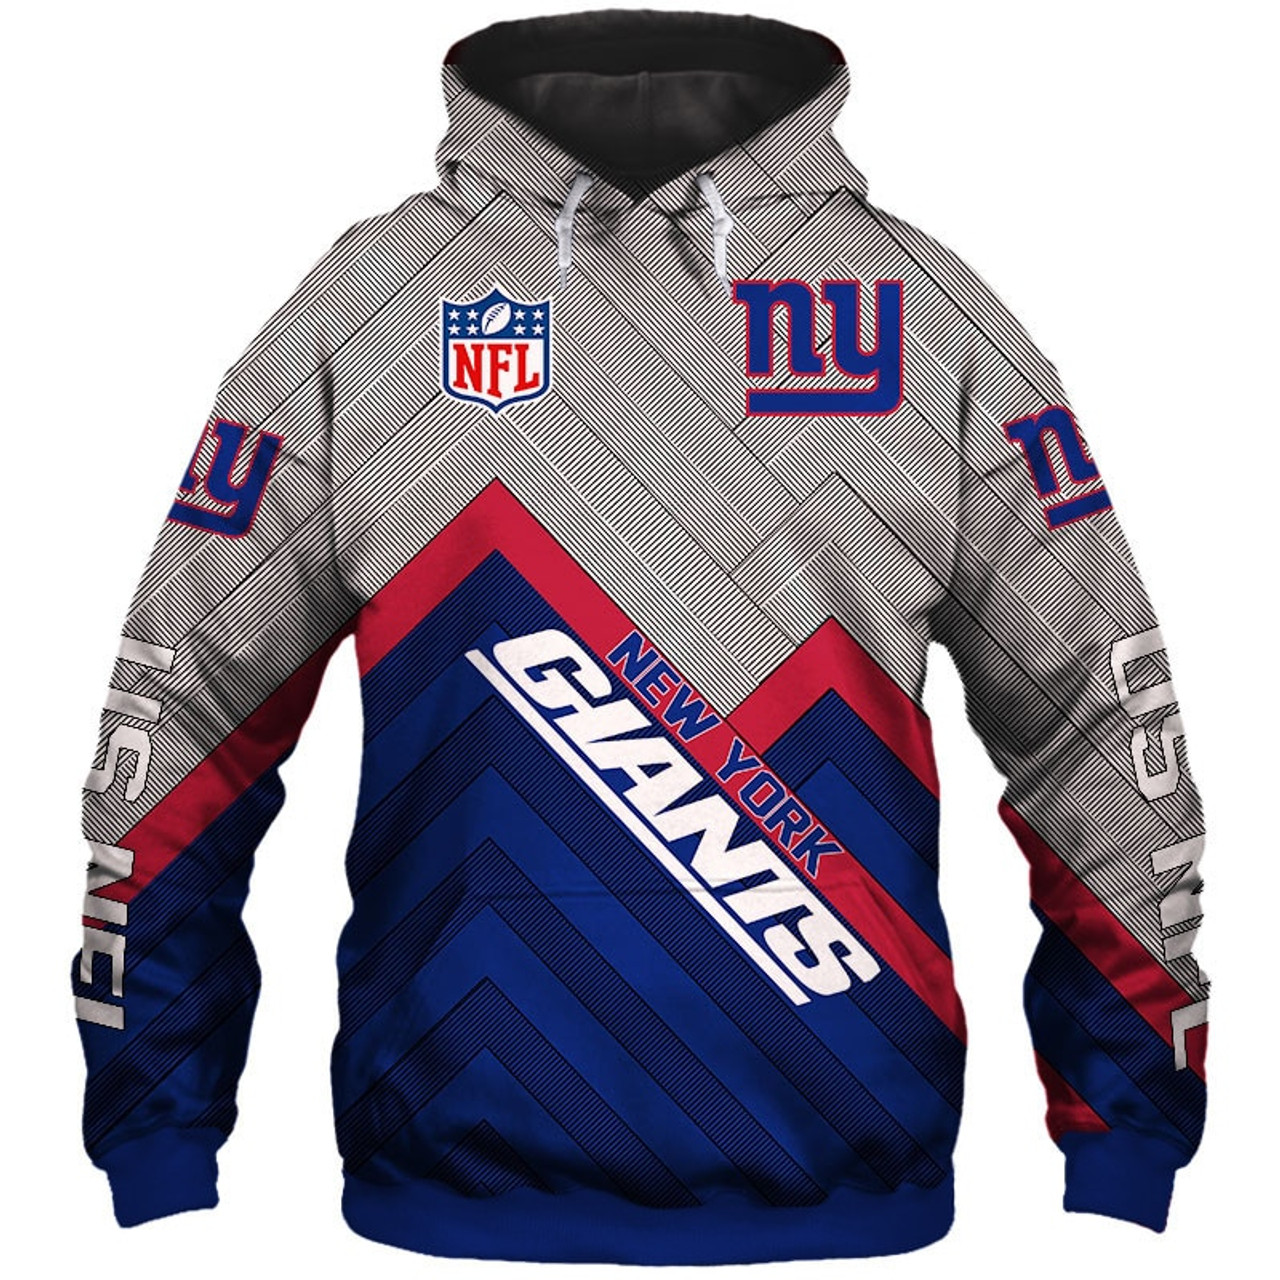 big sale 1f06a f54a5 **(NEW-OFFICIAL-N.F.L.NEW-YORK-GIANTS-PULLOVER-HOODIES/3D-CUSTOM-GIANTS-LOGOS  & OFFICIAL-GIANTS-TEAM-COLORS/NICE-3D-DETAILED-GRAPHIC-PRINTED-DOUBLE-SI...